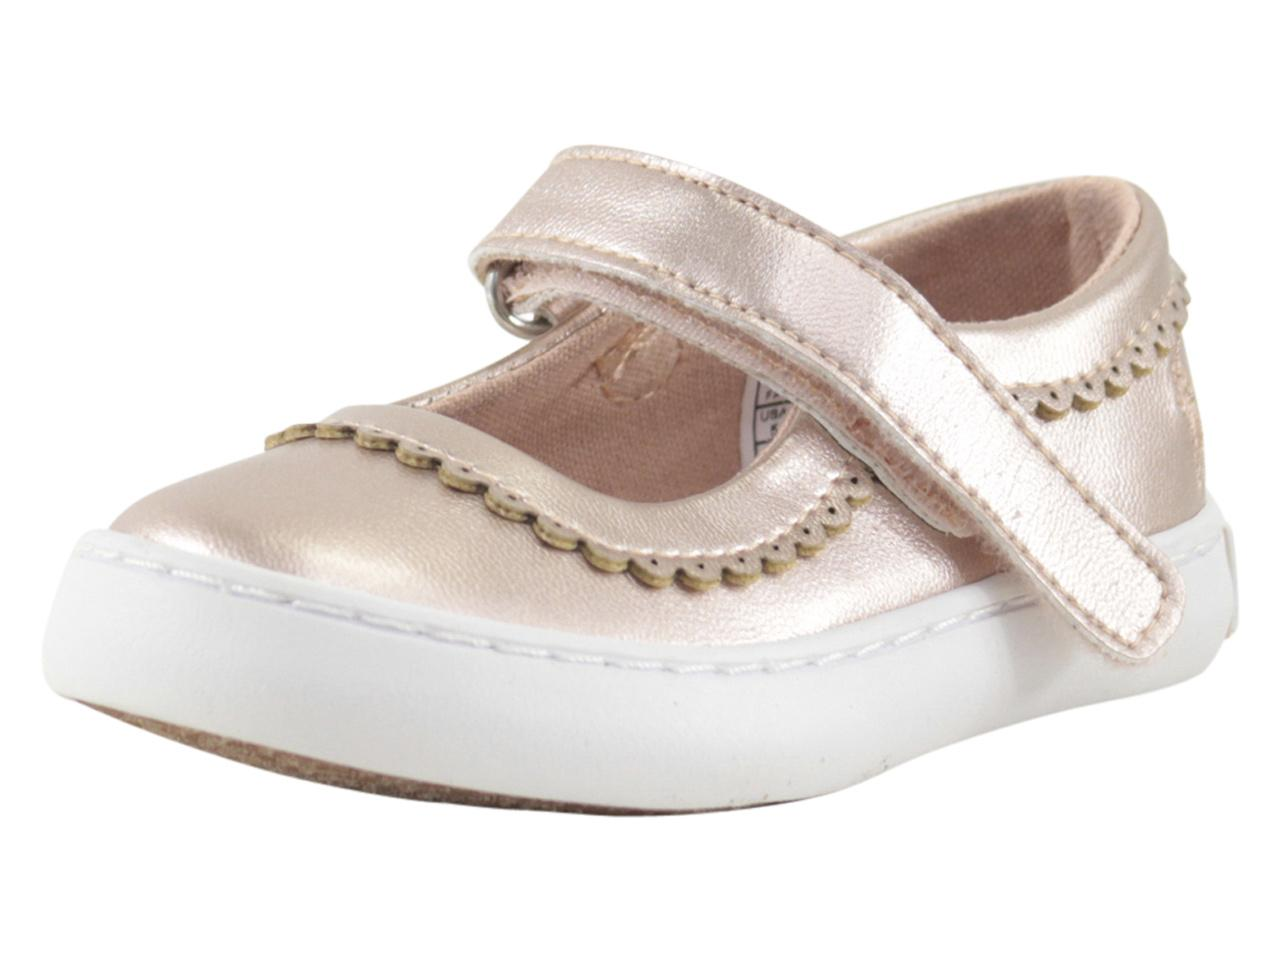 2146066fc Polo Ralph Lauren Toddler Girl's Pella-II Mary Janes Sneakers Shoes